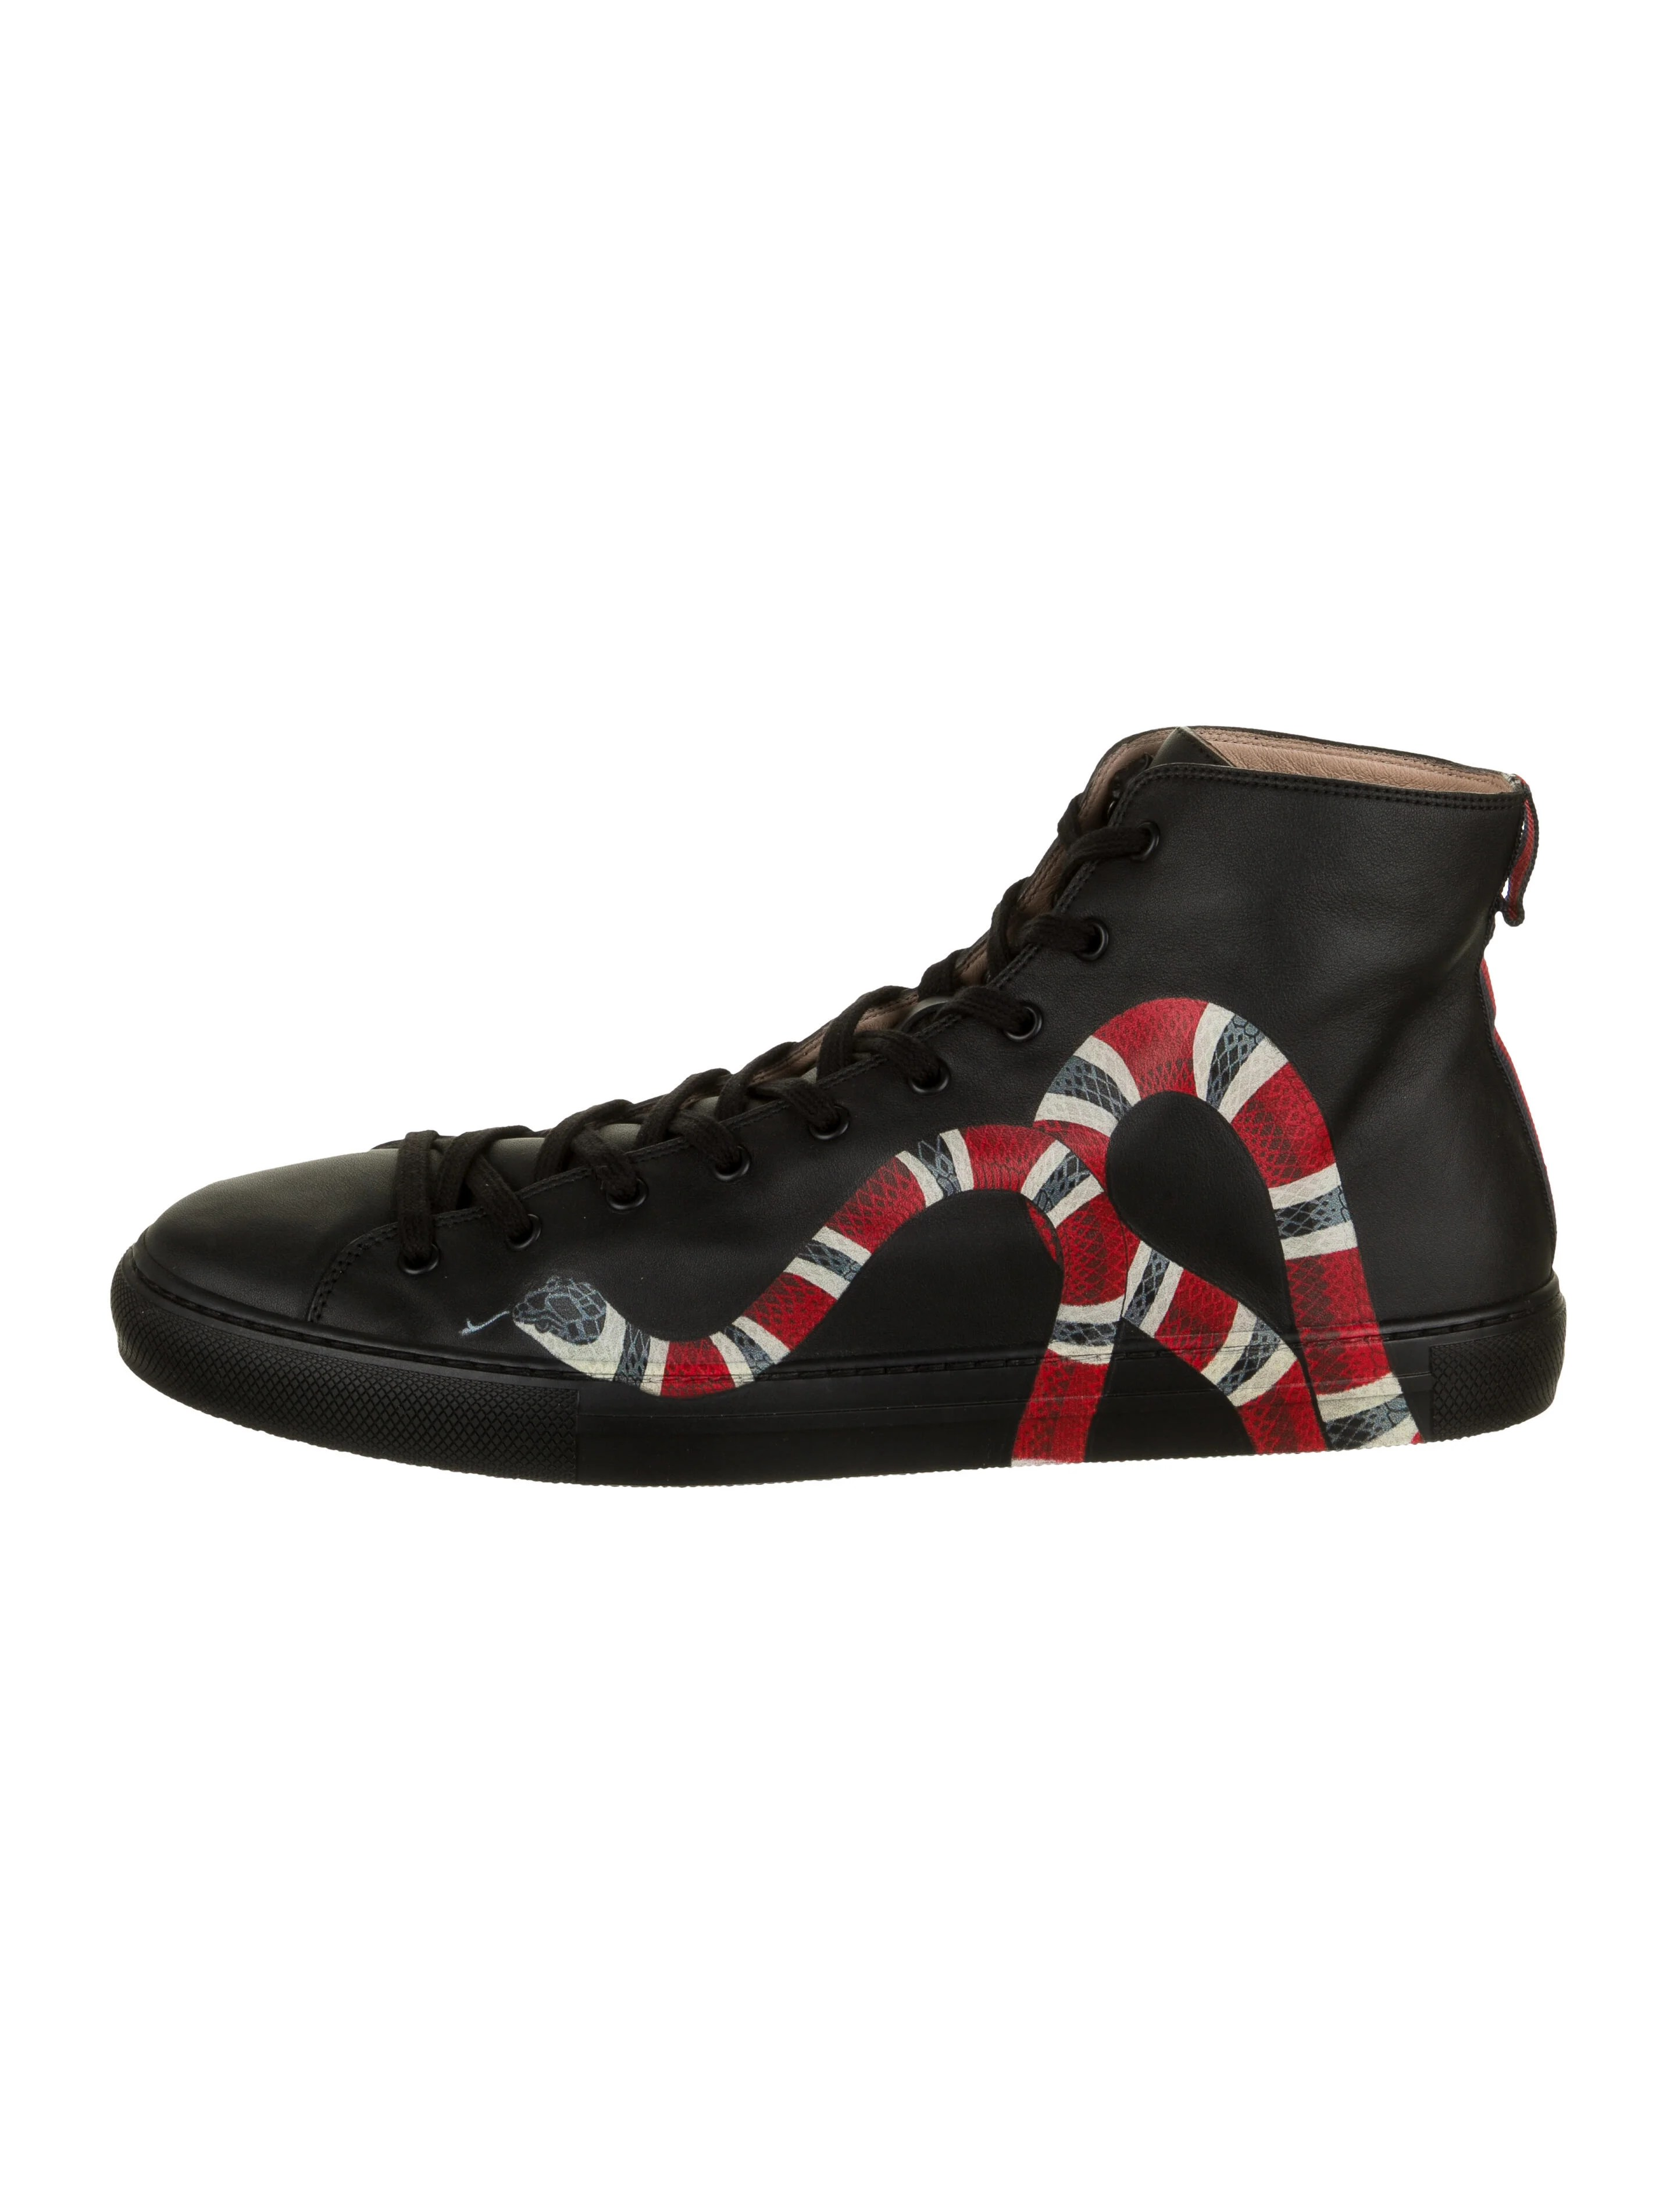 Gucci Leather Kingsnake Sneakers w/ Tags - Shoes - GUC466979   The RealReal